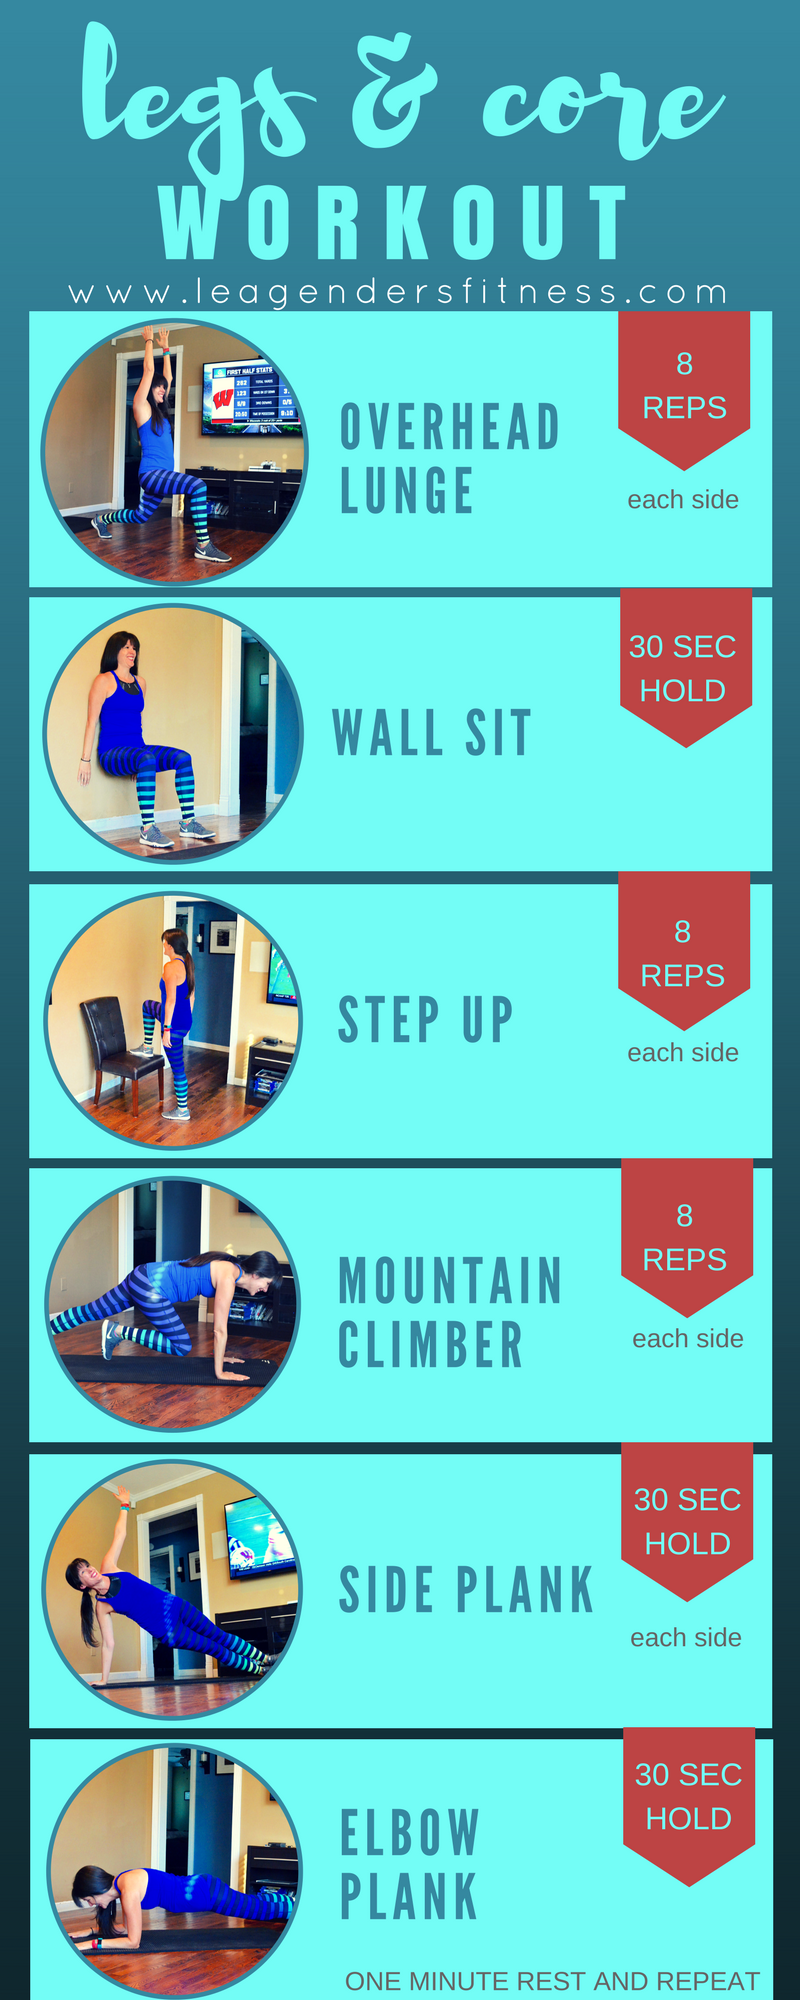 6 moves leg and core home workout. Save to your favorite Pinterest exercise board for later.